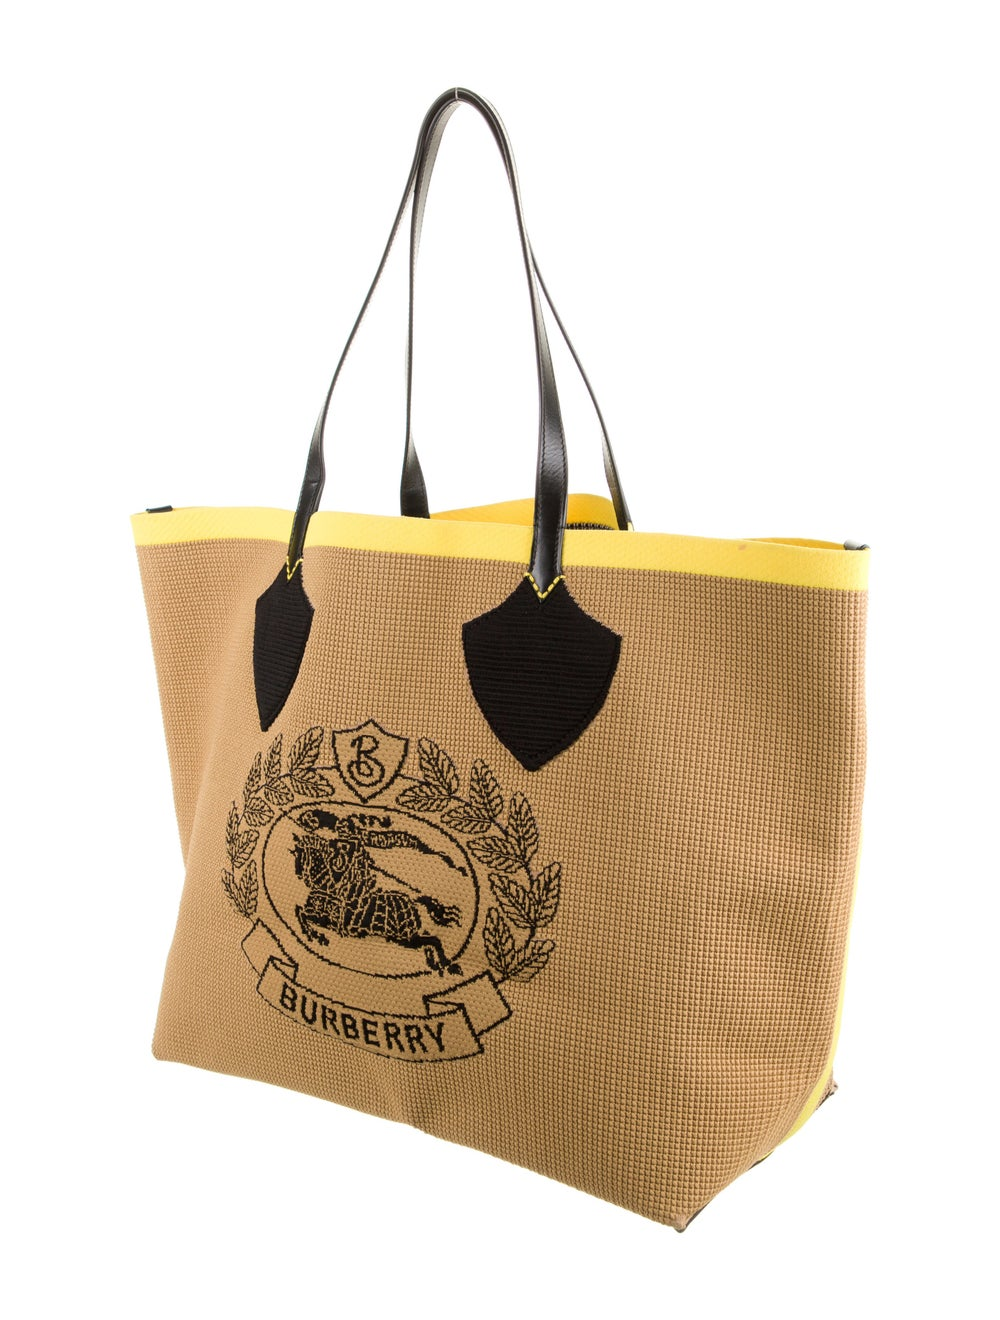 Burberry Large Logo Woven Tote - image 3